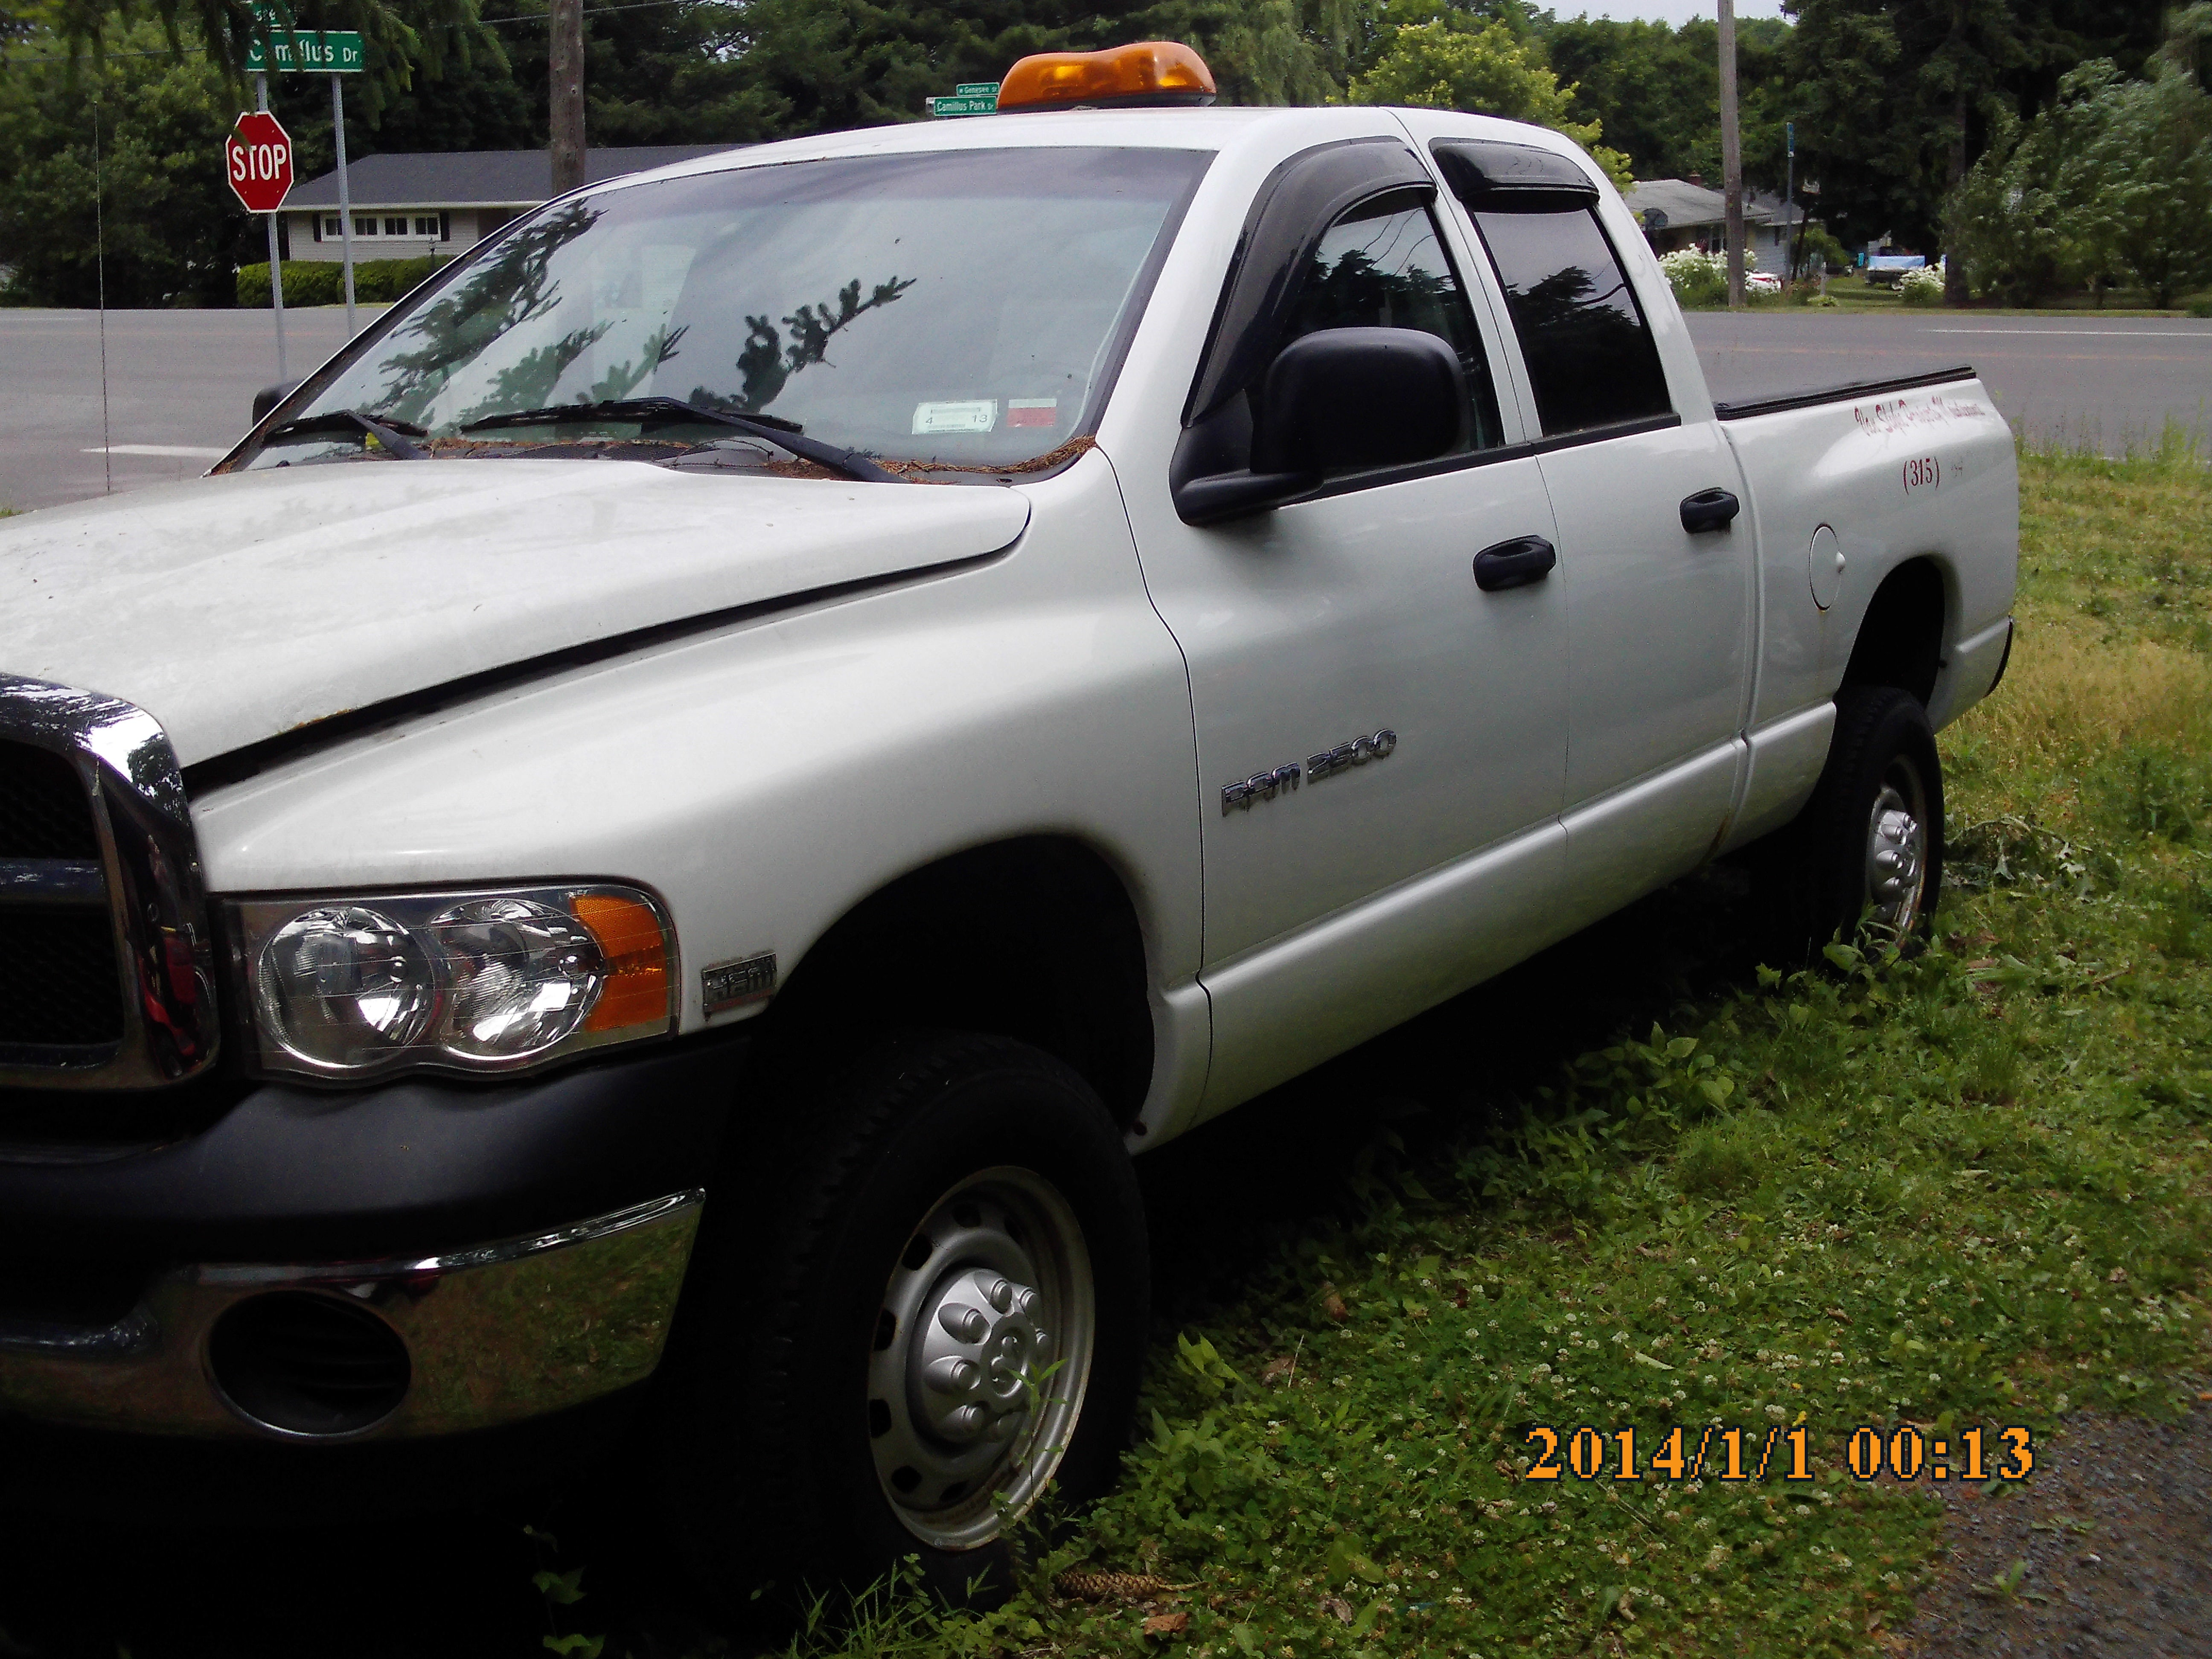 Junk 2003 Dodge RAM 2500 In Camillus, NY | @Junk my Car